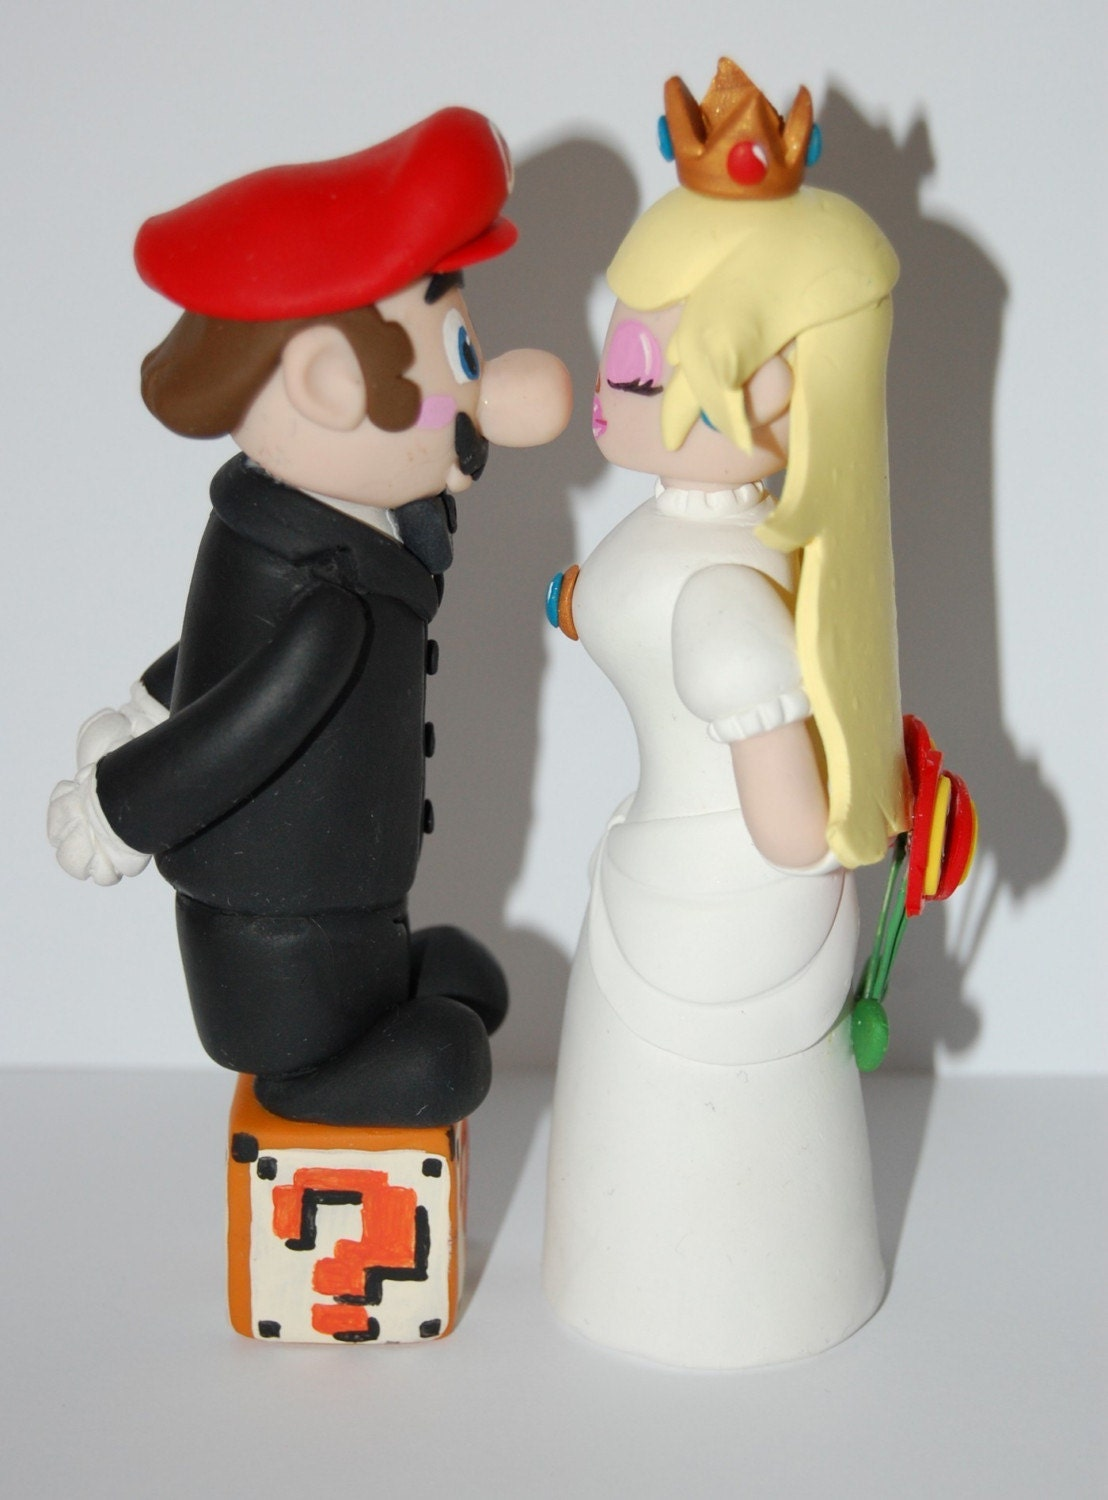 princess peach and mario cartoon. princess peach and mario